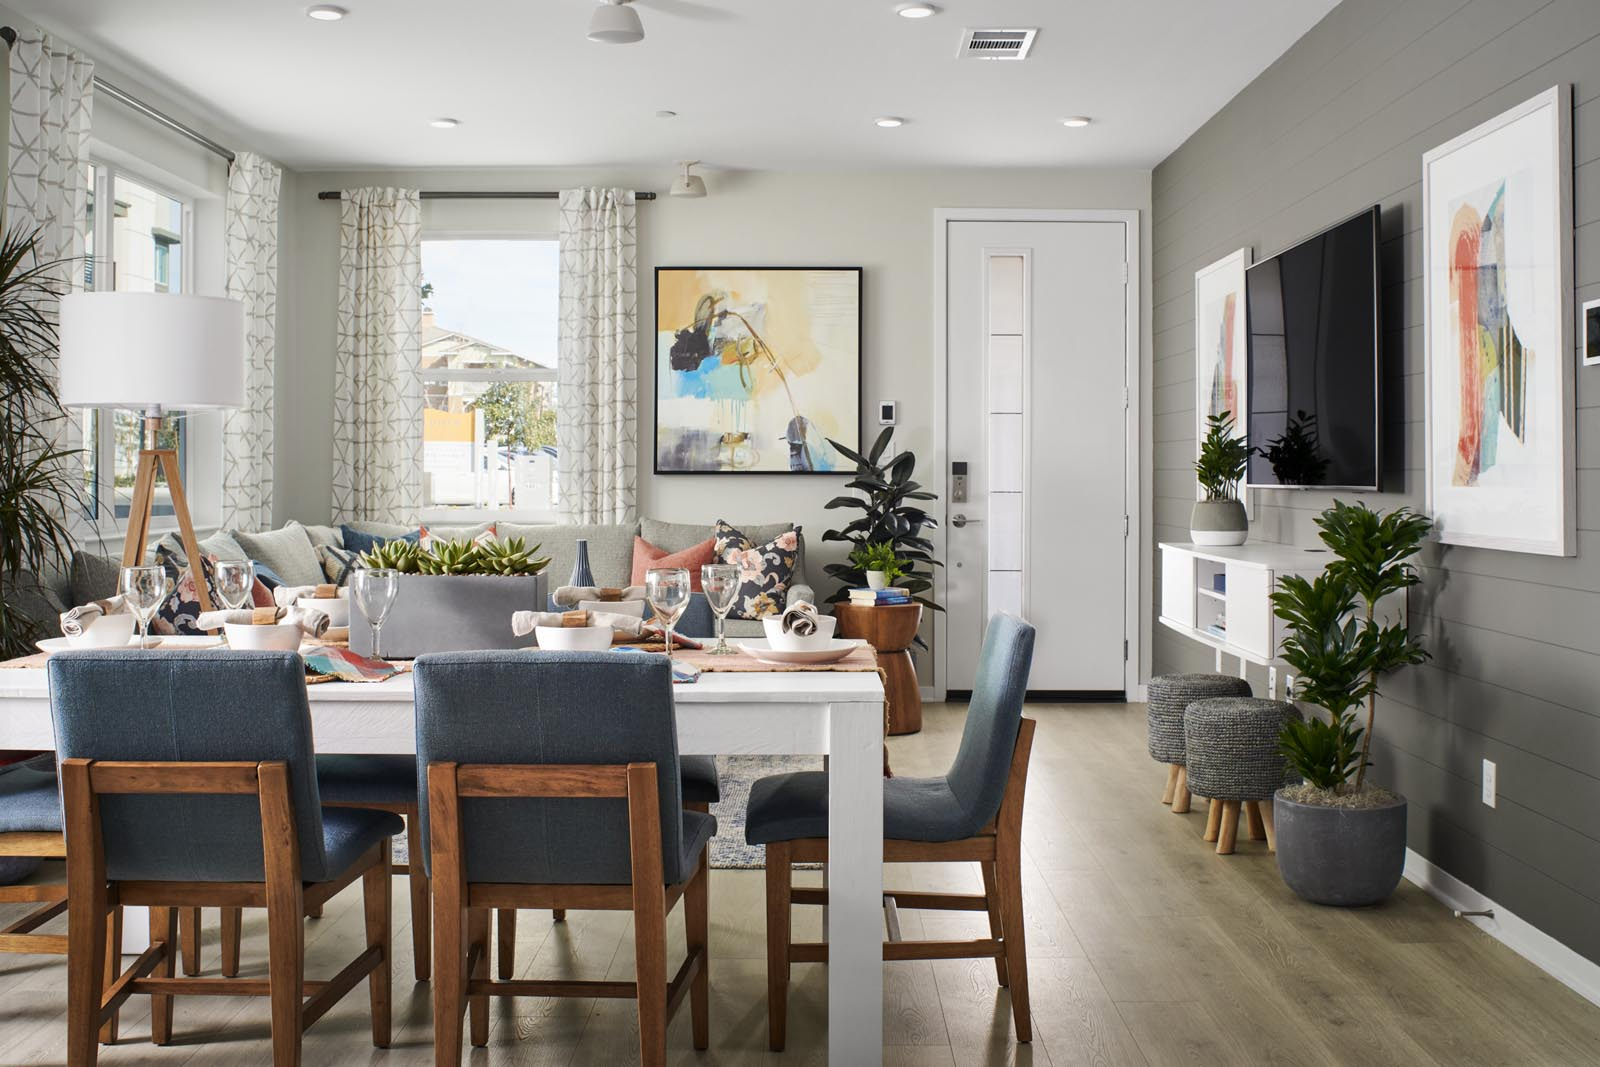 Dining Area   Residence 1   Enliven   New Homes in Rancho Cucamonga, CA   Van Daele Homes